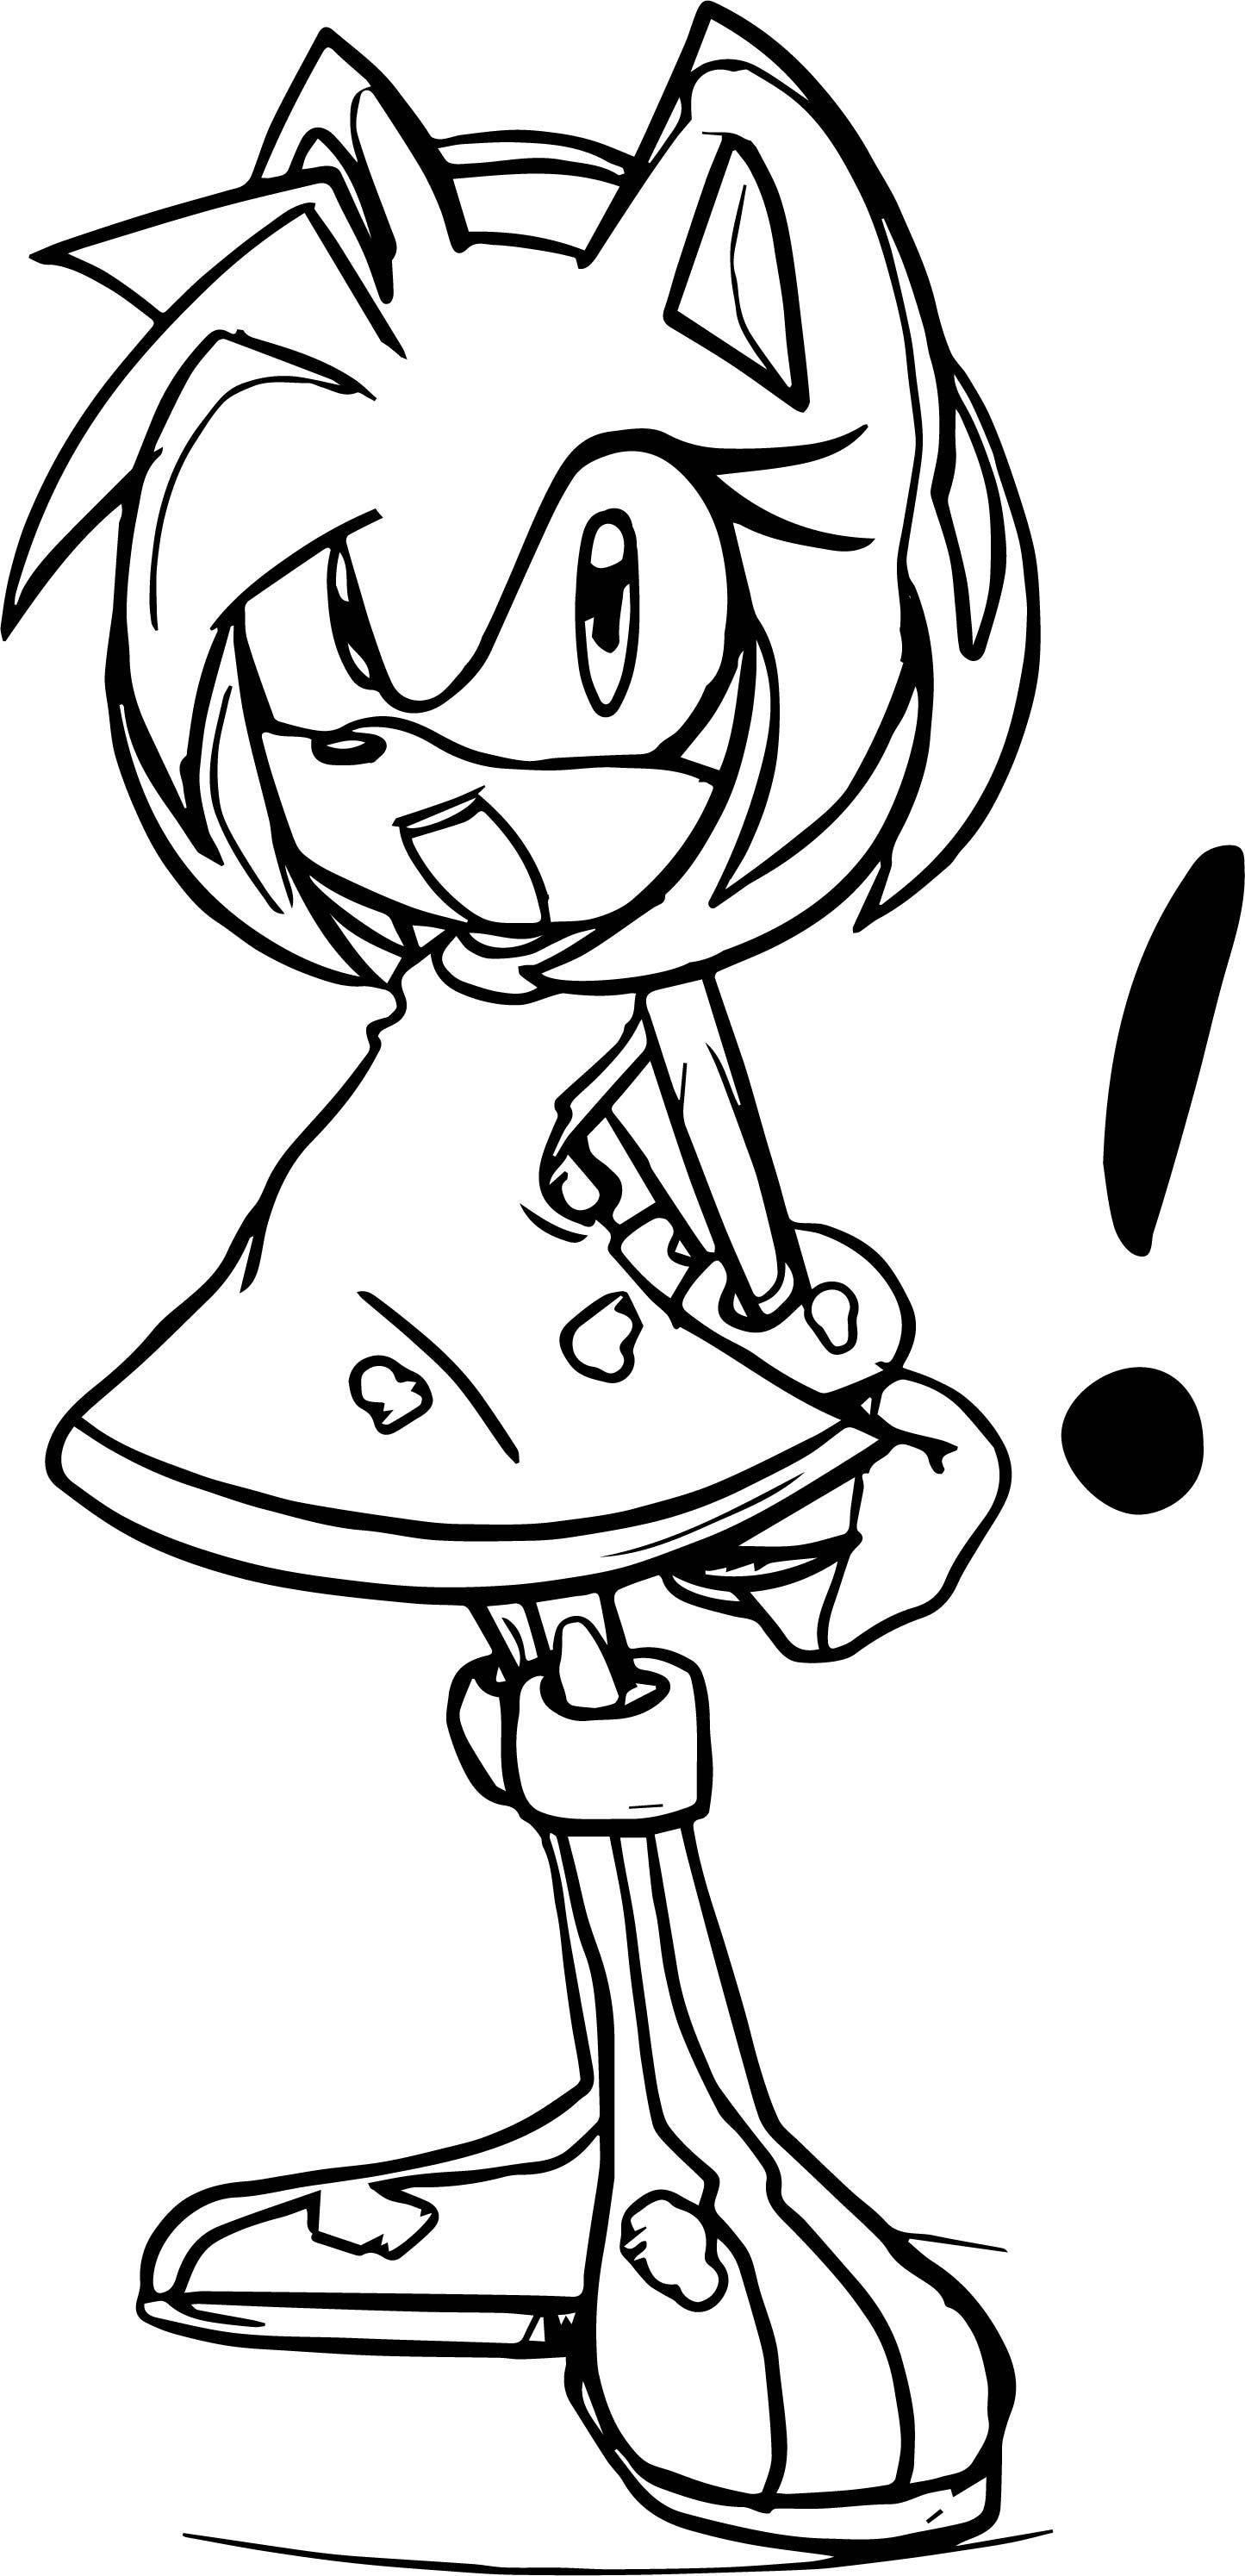 Awesome Amy Rose Accent Coloring Page Amy Rose Coloring Pages Color